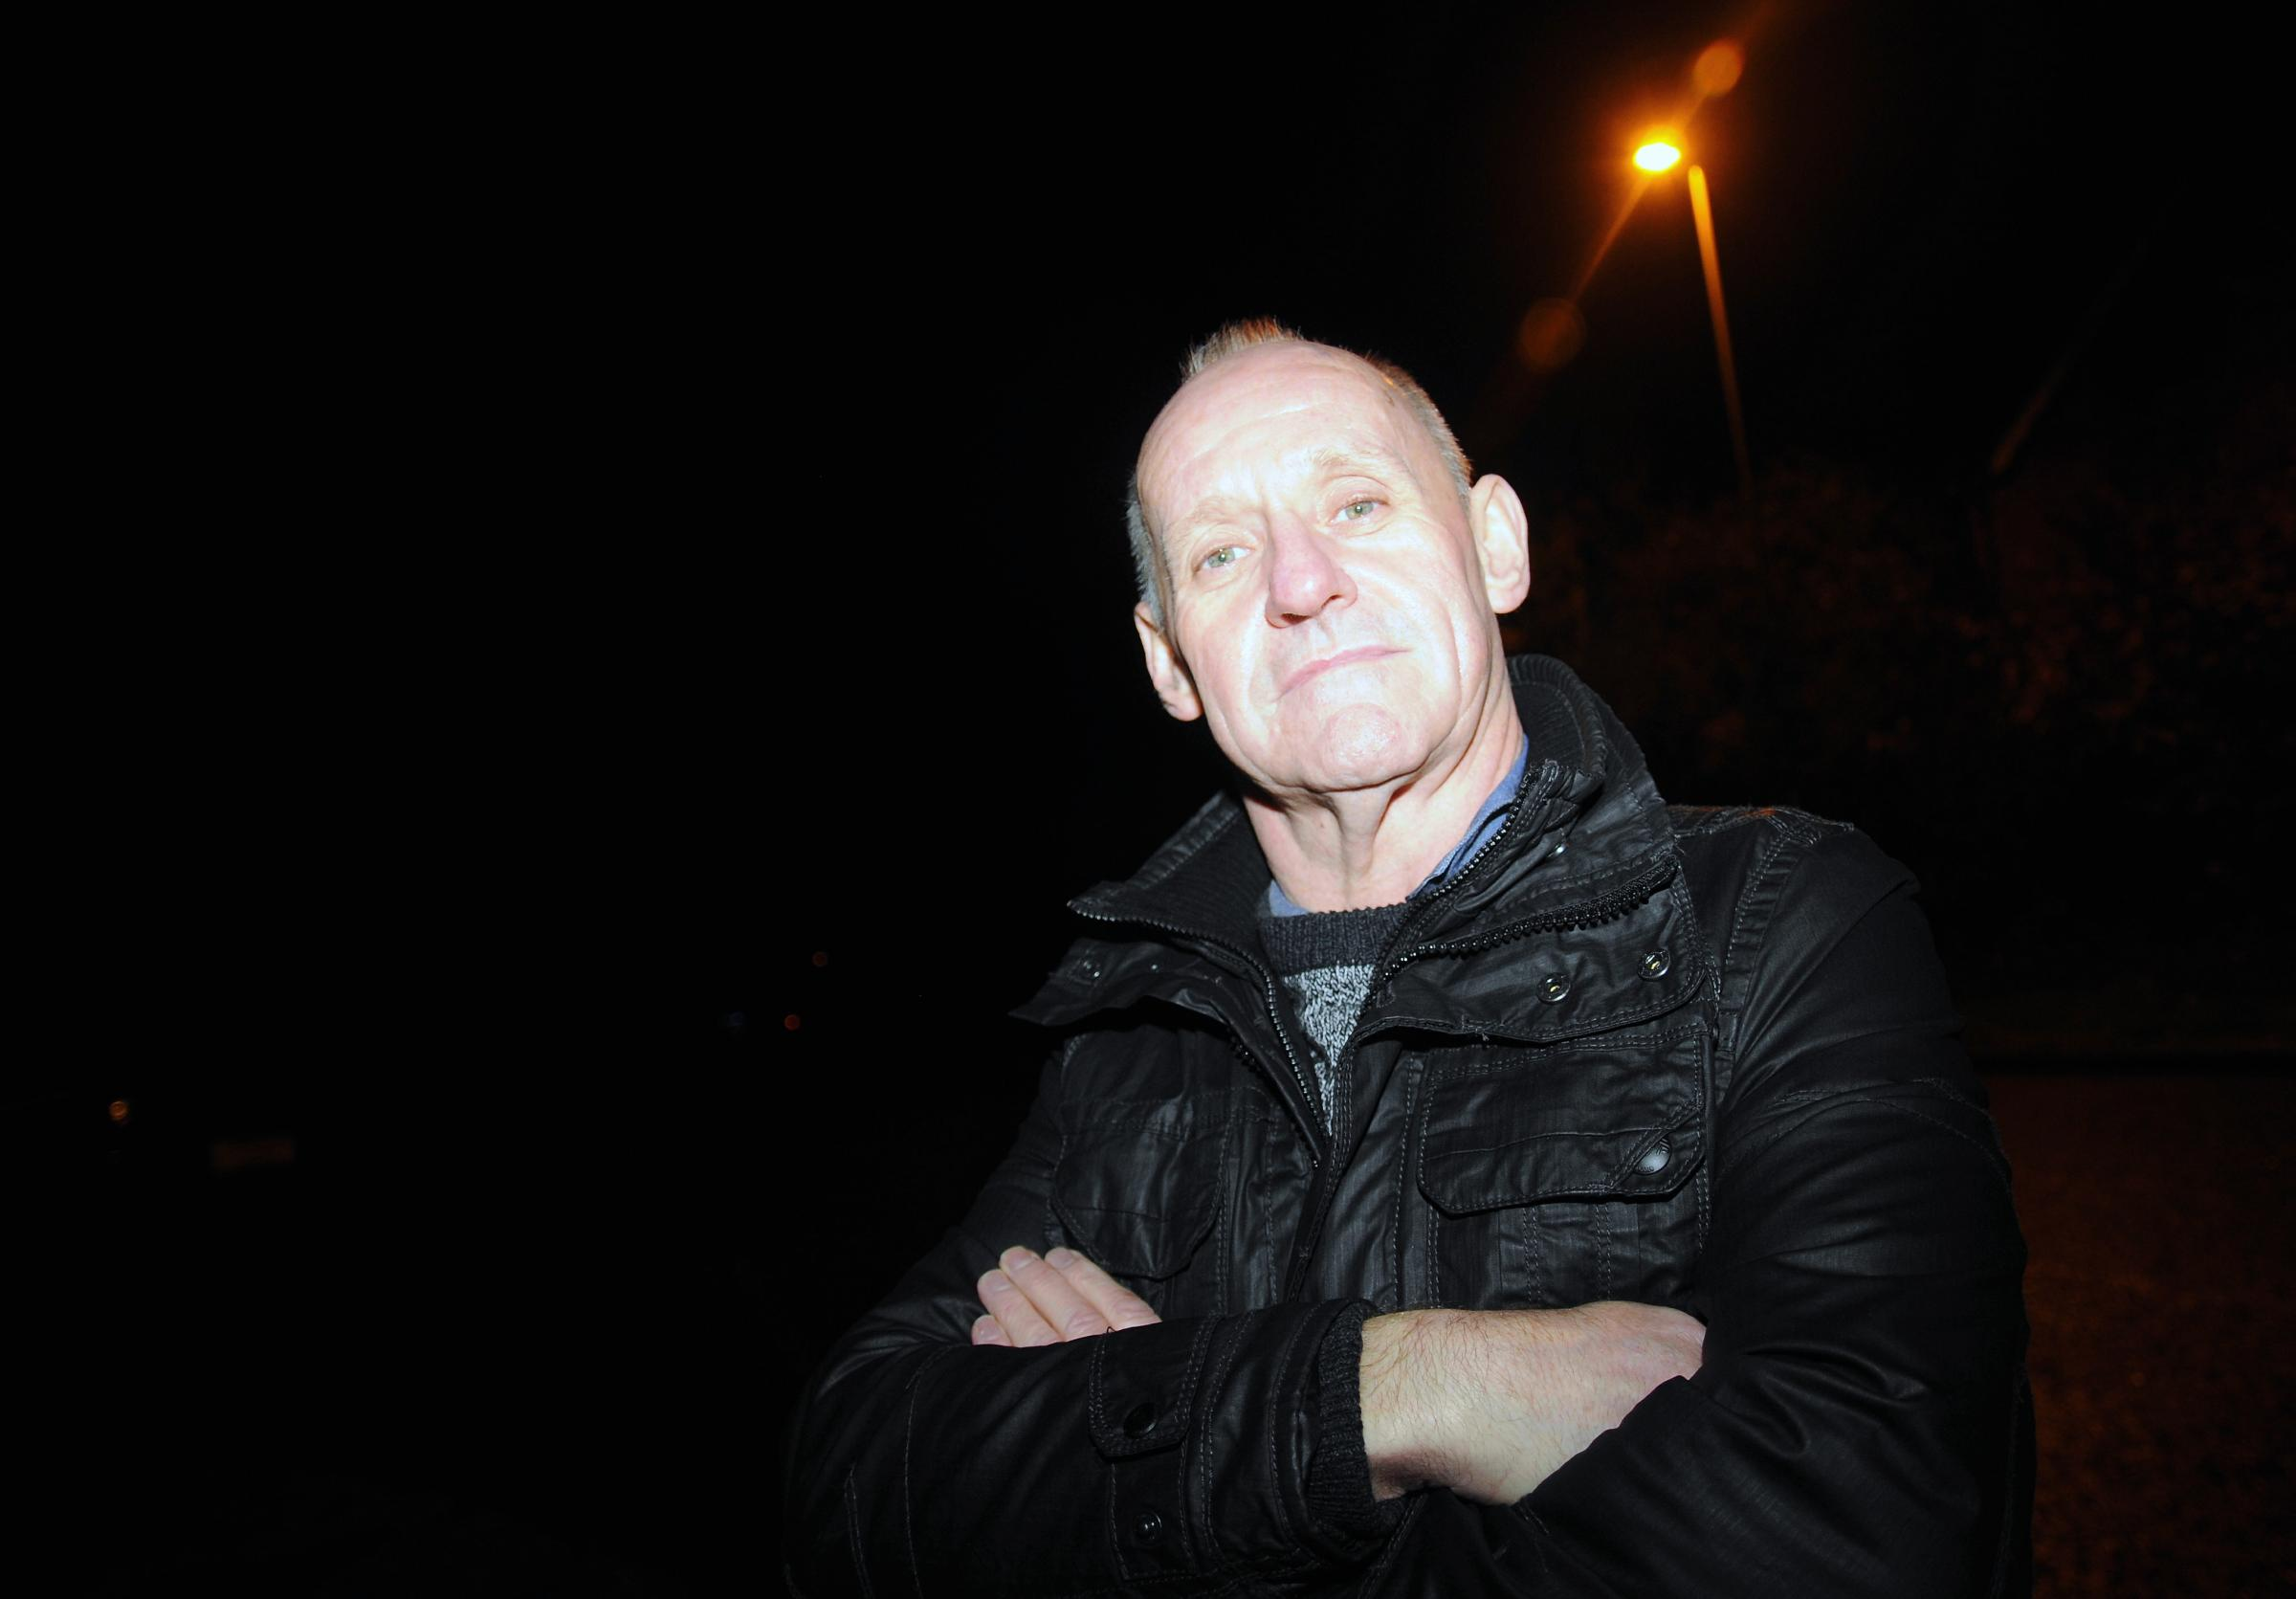 Trevor Lemar says residents are still in the dark in Thornhill Way, Chineham as they wait for new street lights to work